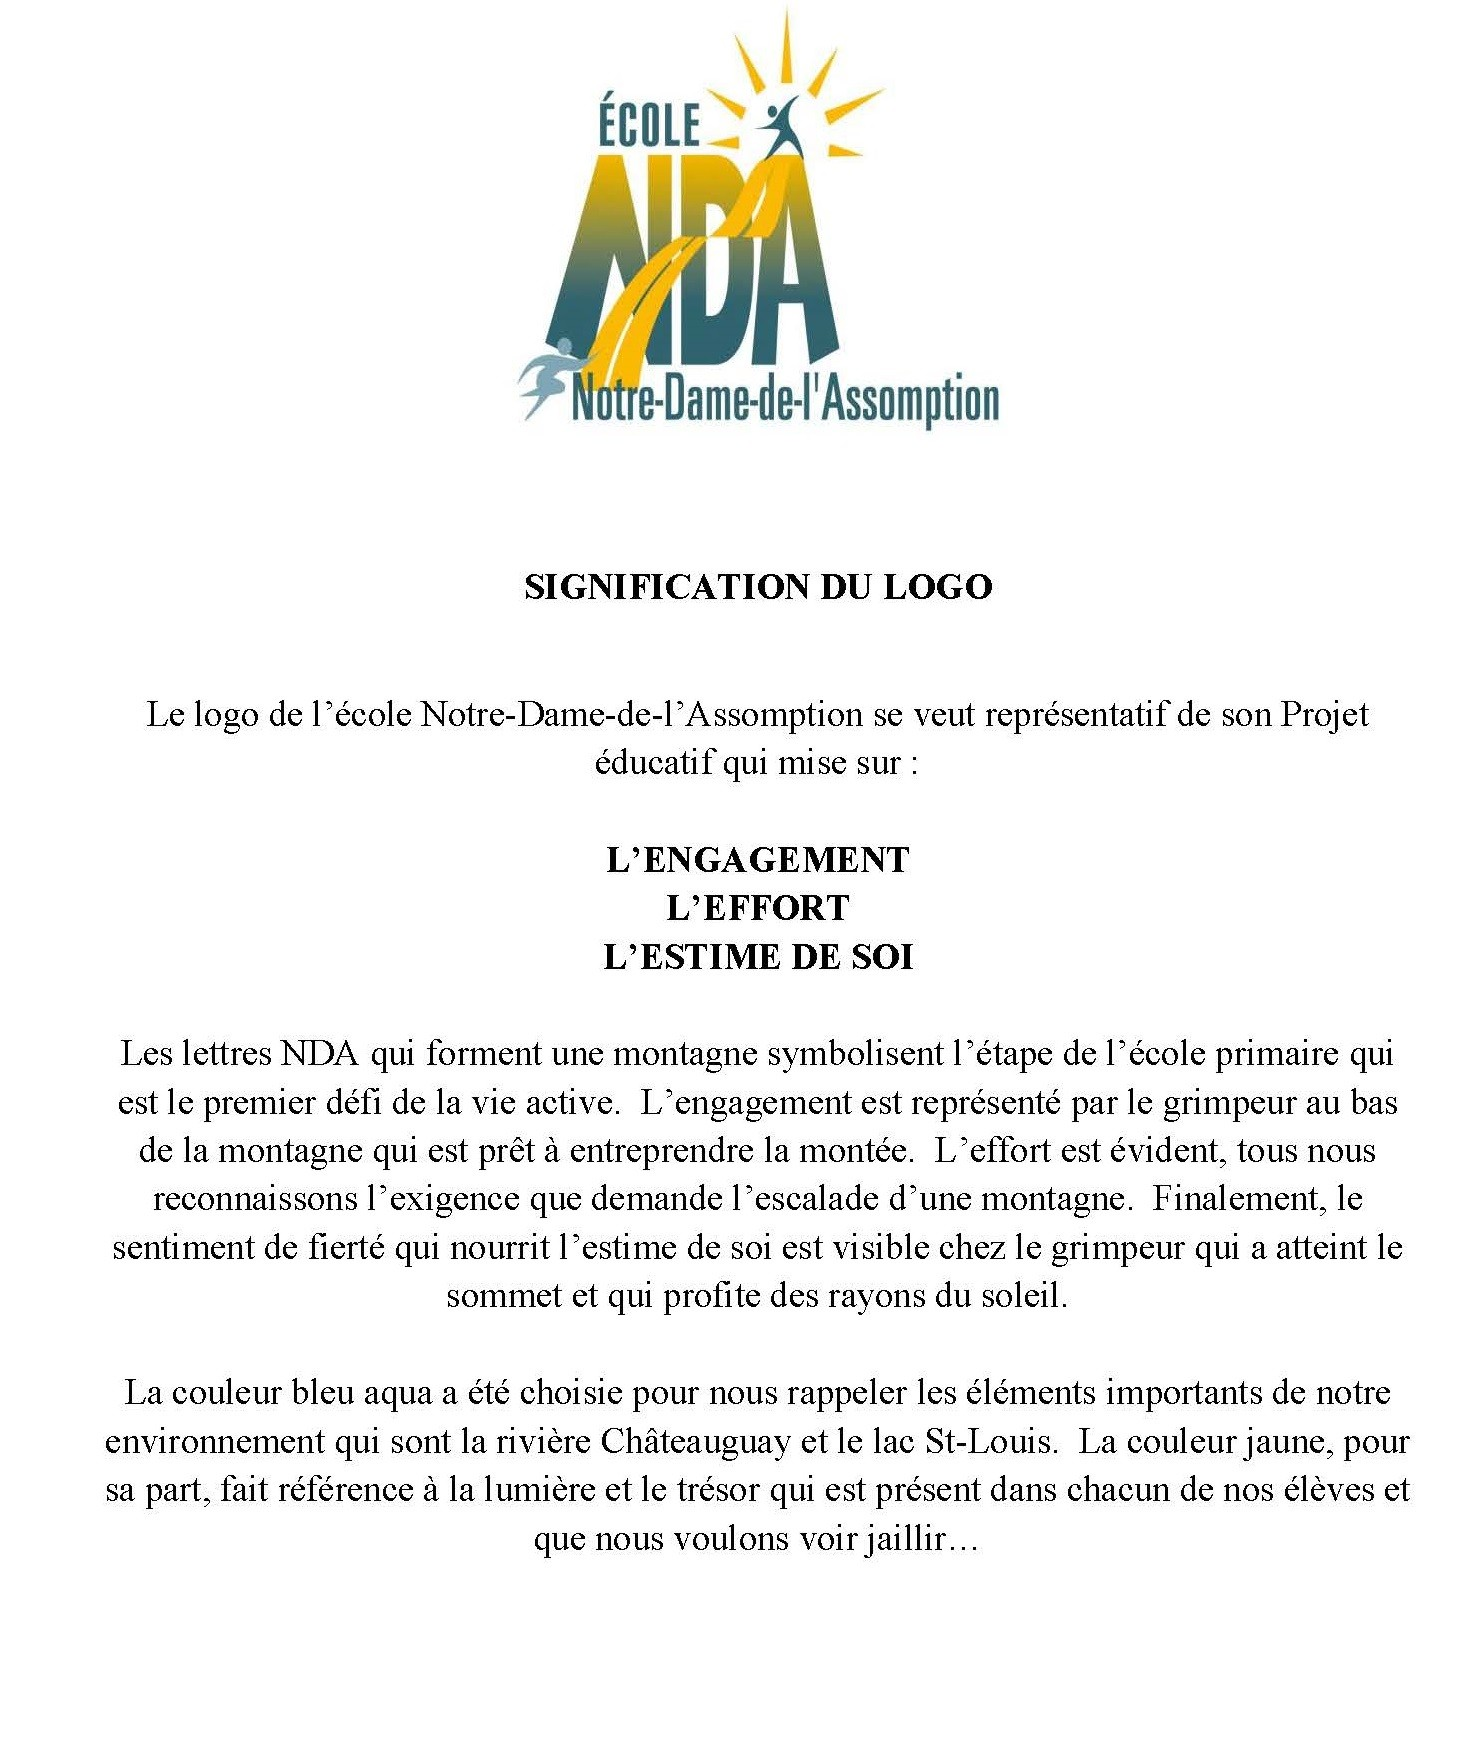 SIGNIFICATION DU LOGO 2